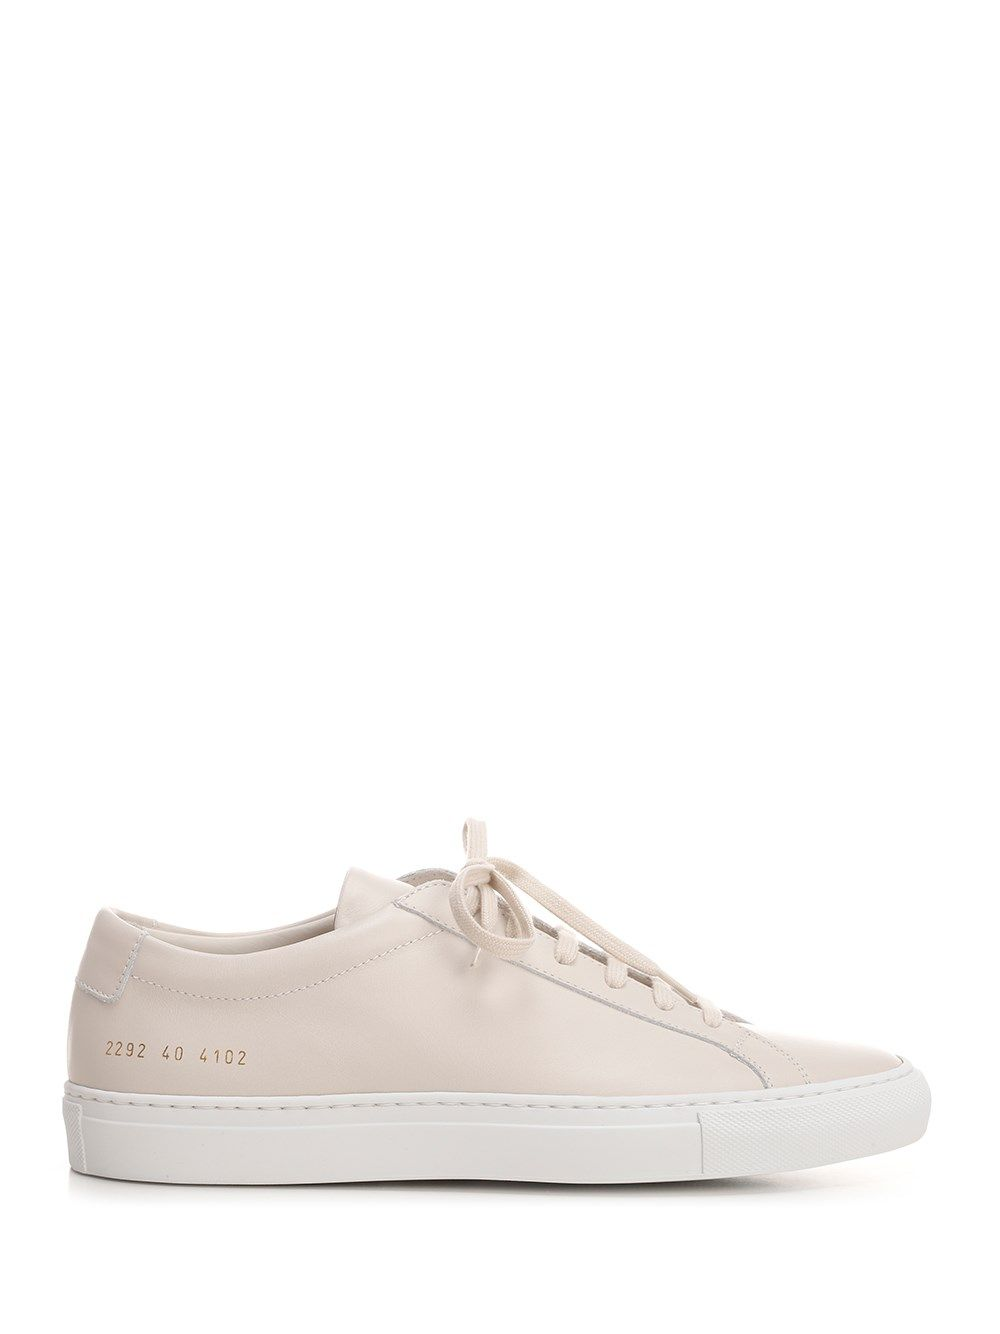 Common Projects COMMON PROJECTS MEN'S 22924102 WHITE OTHER MATERIALS SNEAKERS